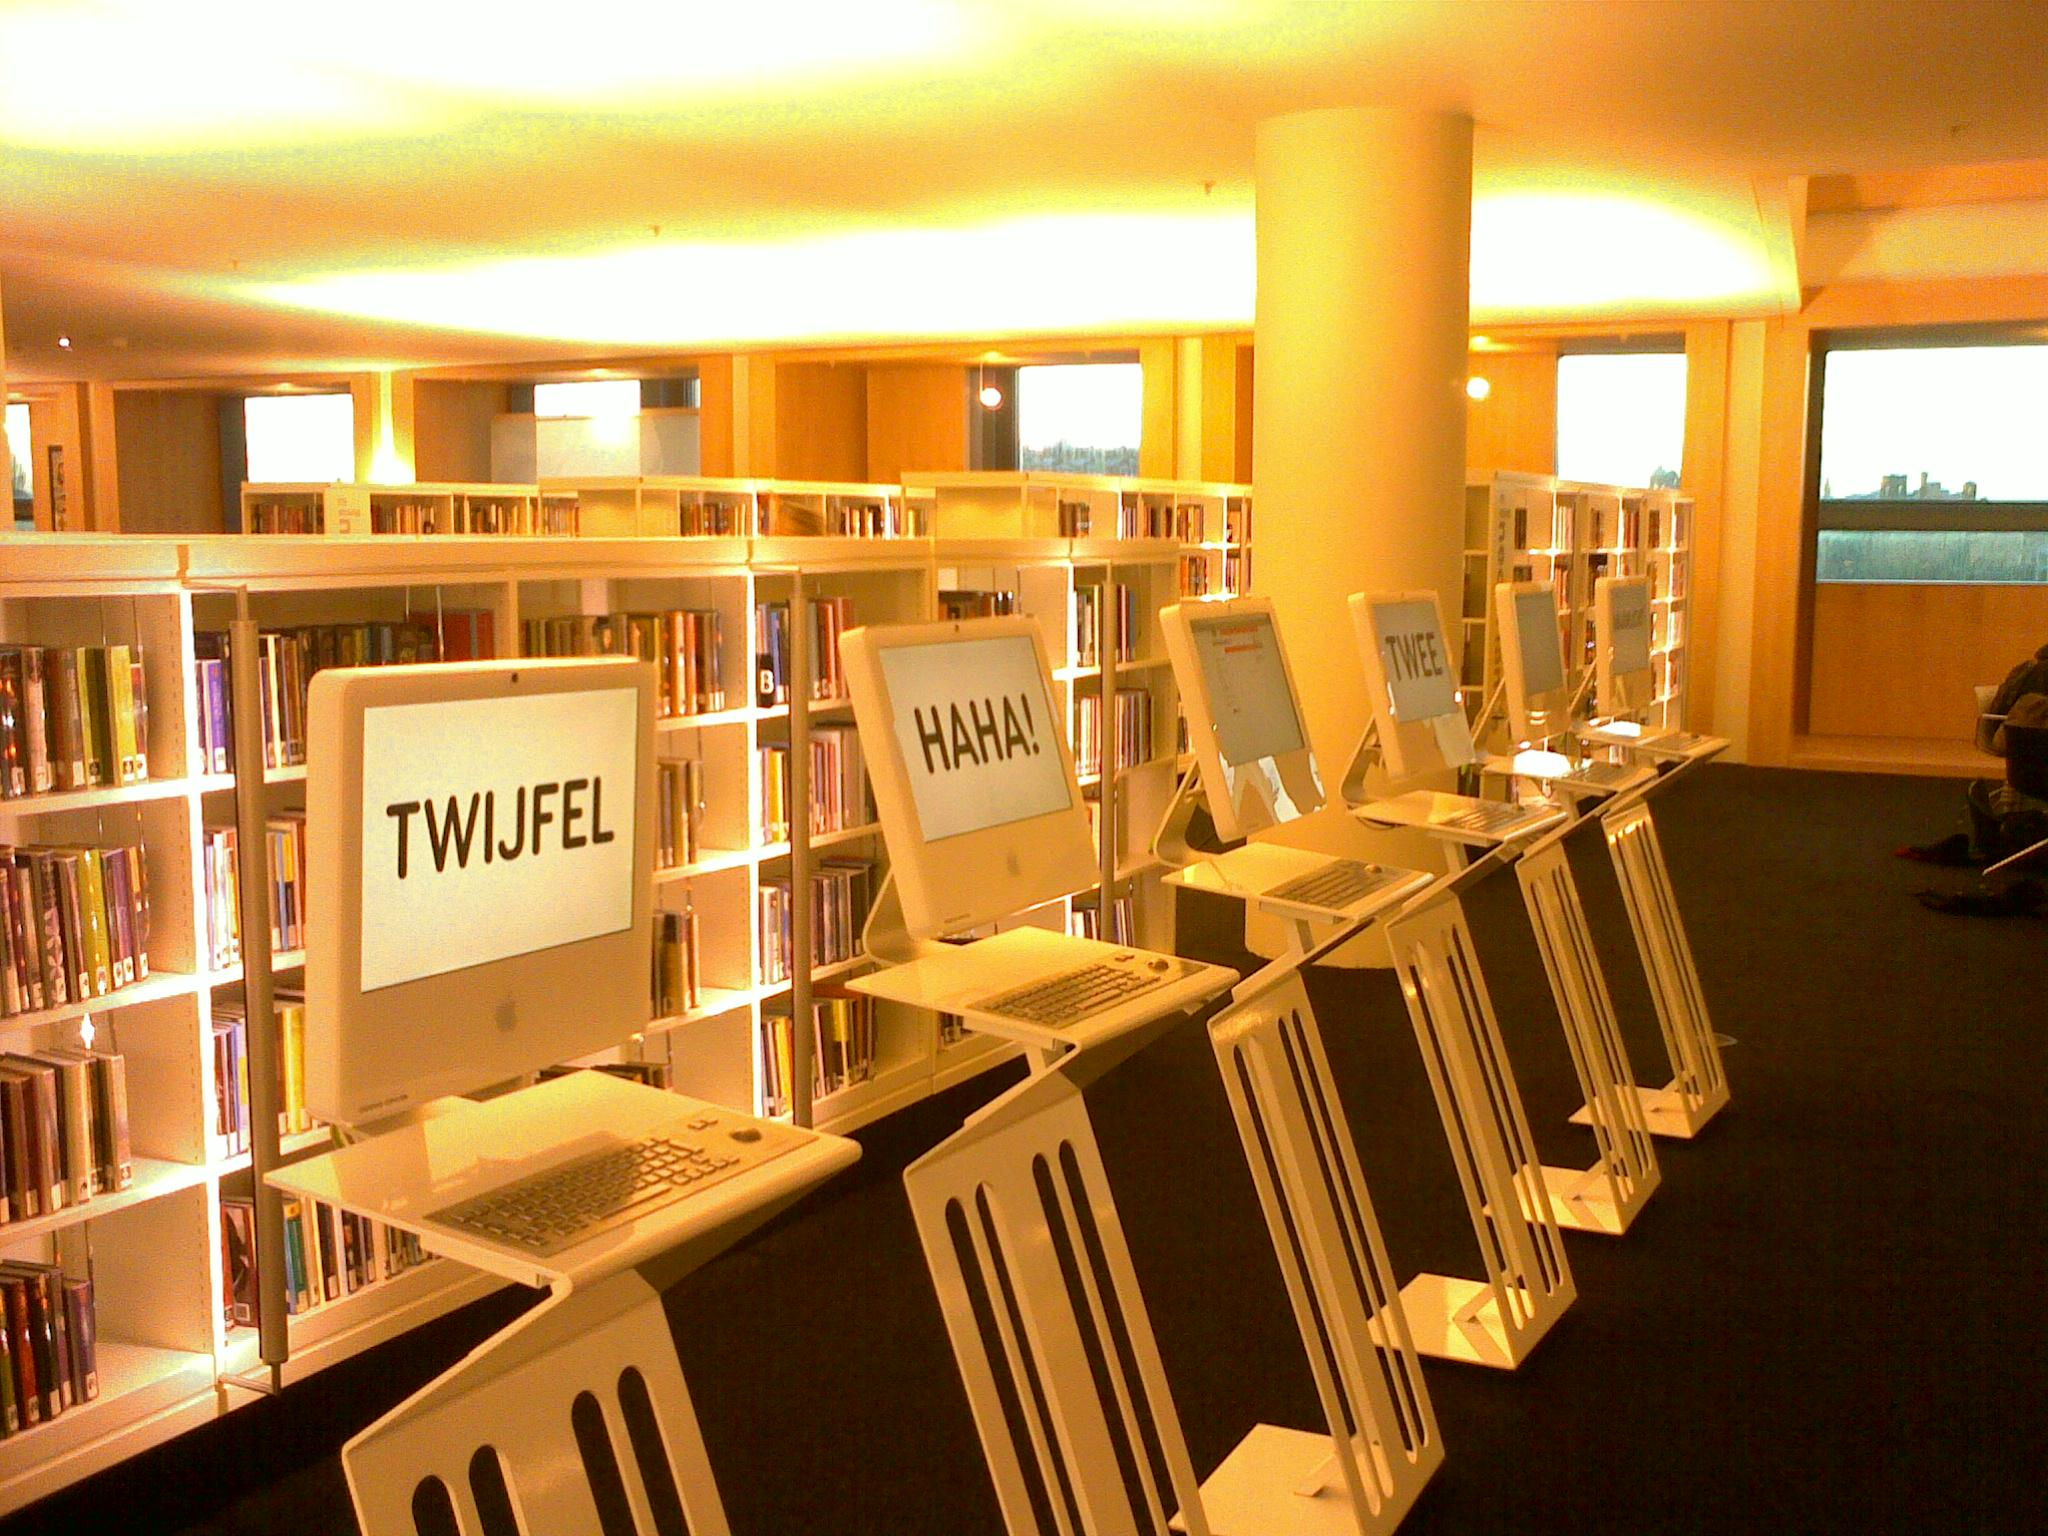 File interieur bibliotheek wikimedia commons for Interieur stage amsterdam